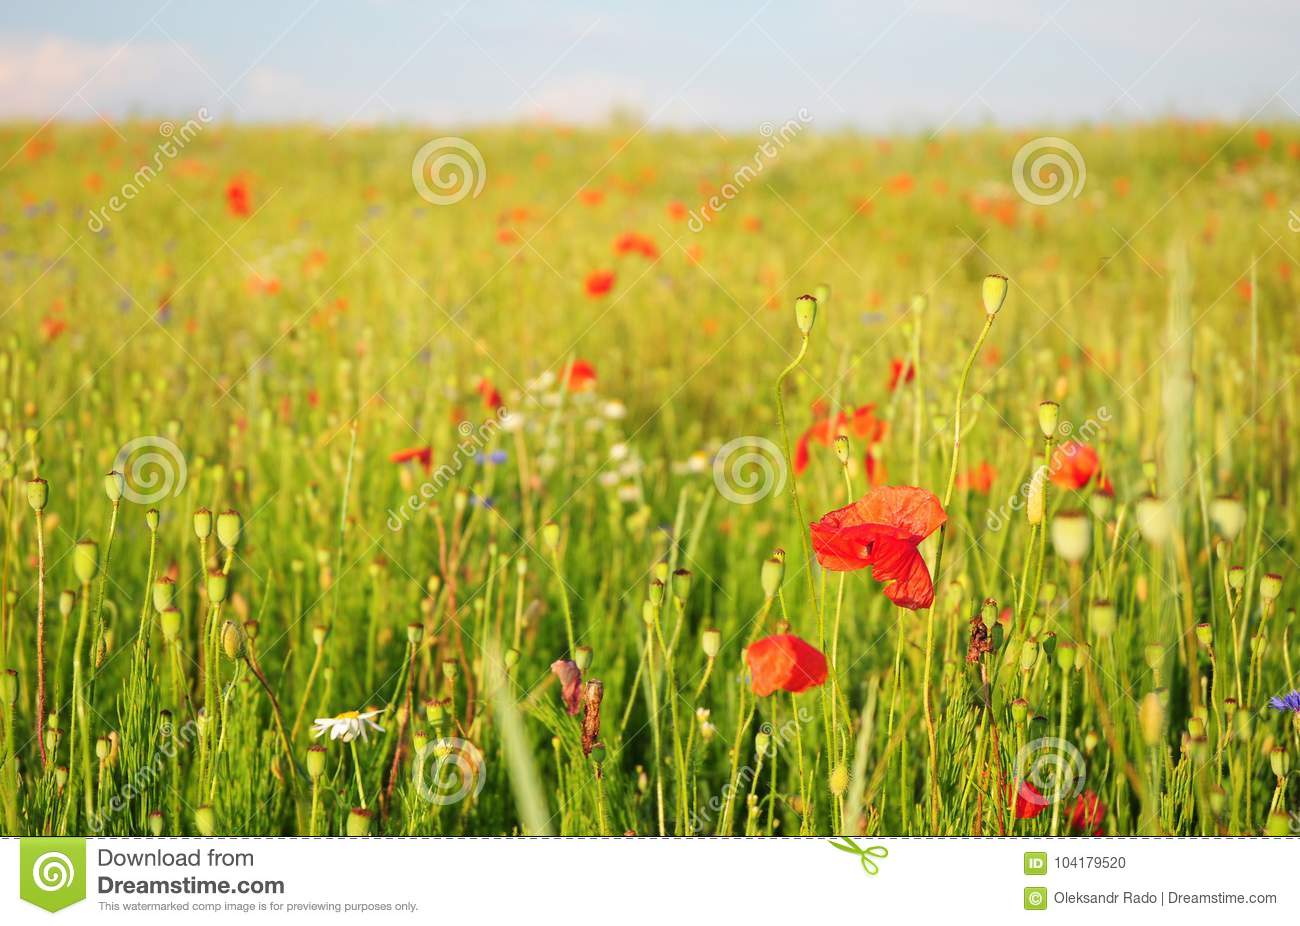 Pictures Of Poppies Flowers Blooming Red Poppies Flowers With